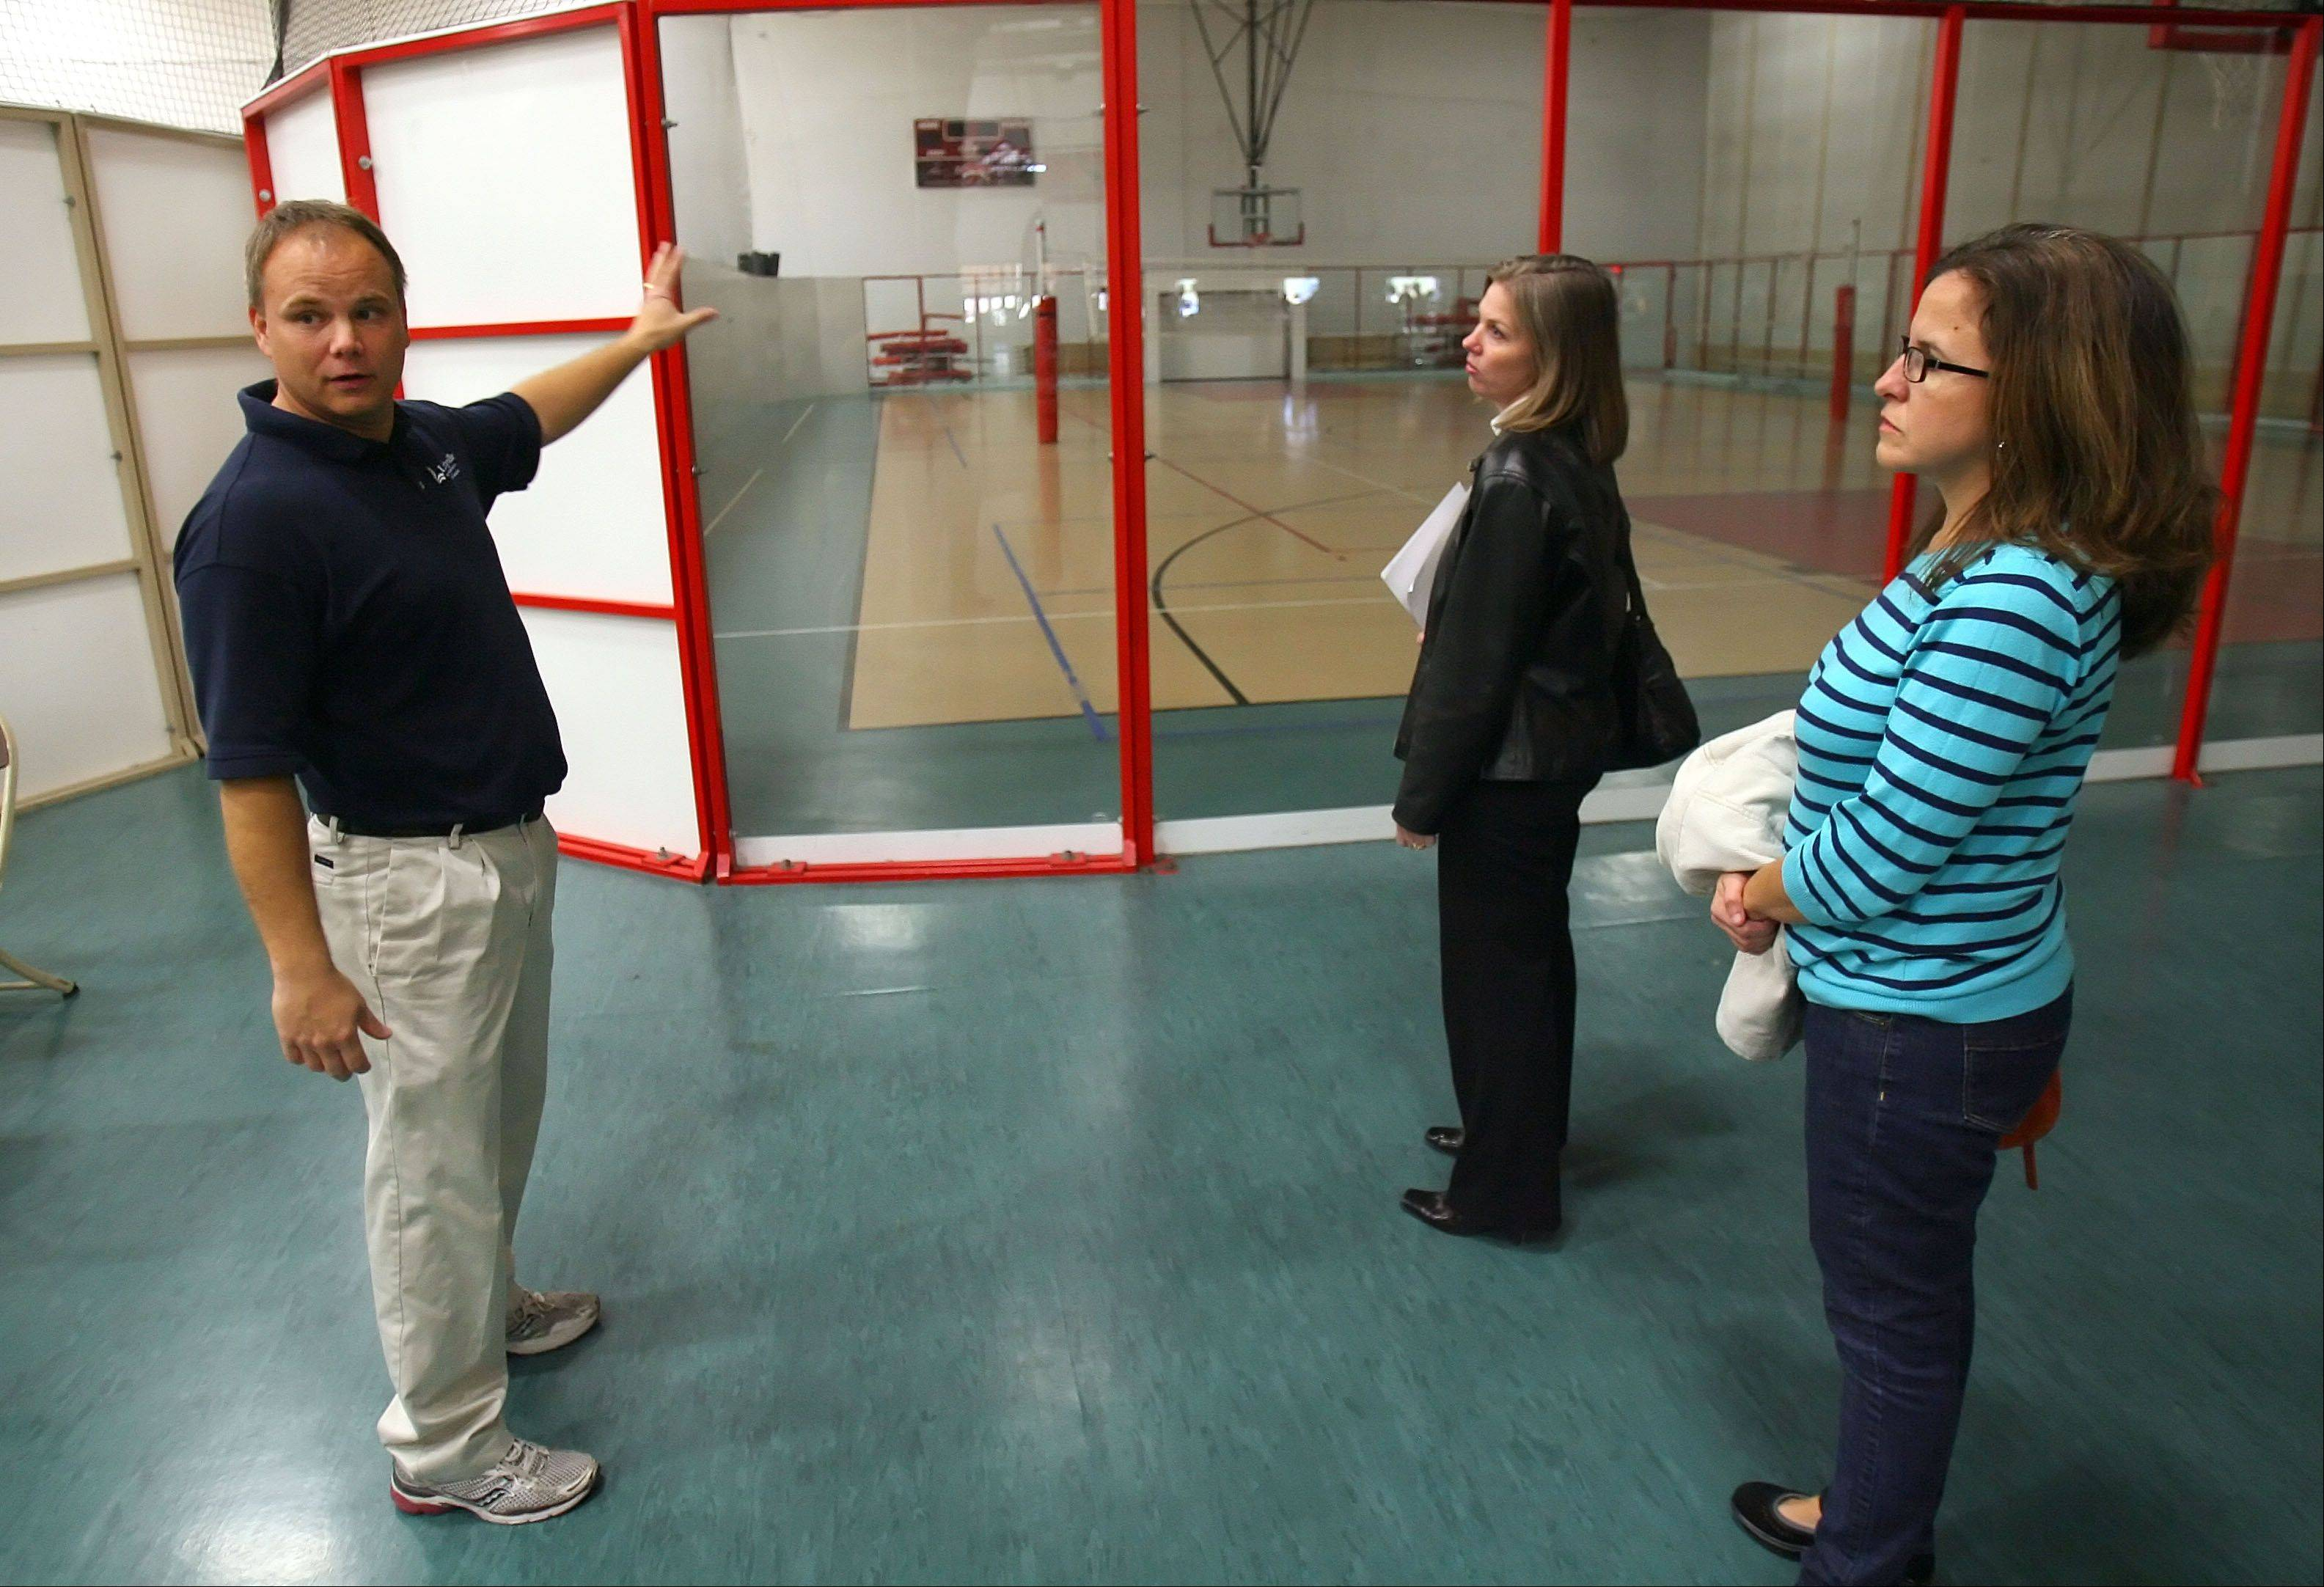 Randy Splitt, facility manager for the Libertyville Sports Complex, talks to Dara Dietmeyer and Colleen Scopacasa, right, about the set up for an overnight New Year's Eve celebration for fifth- to eighth-graders. The event is a fundraiser for a youth baseball team.